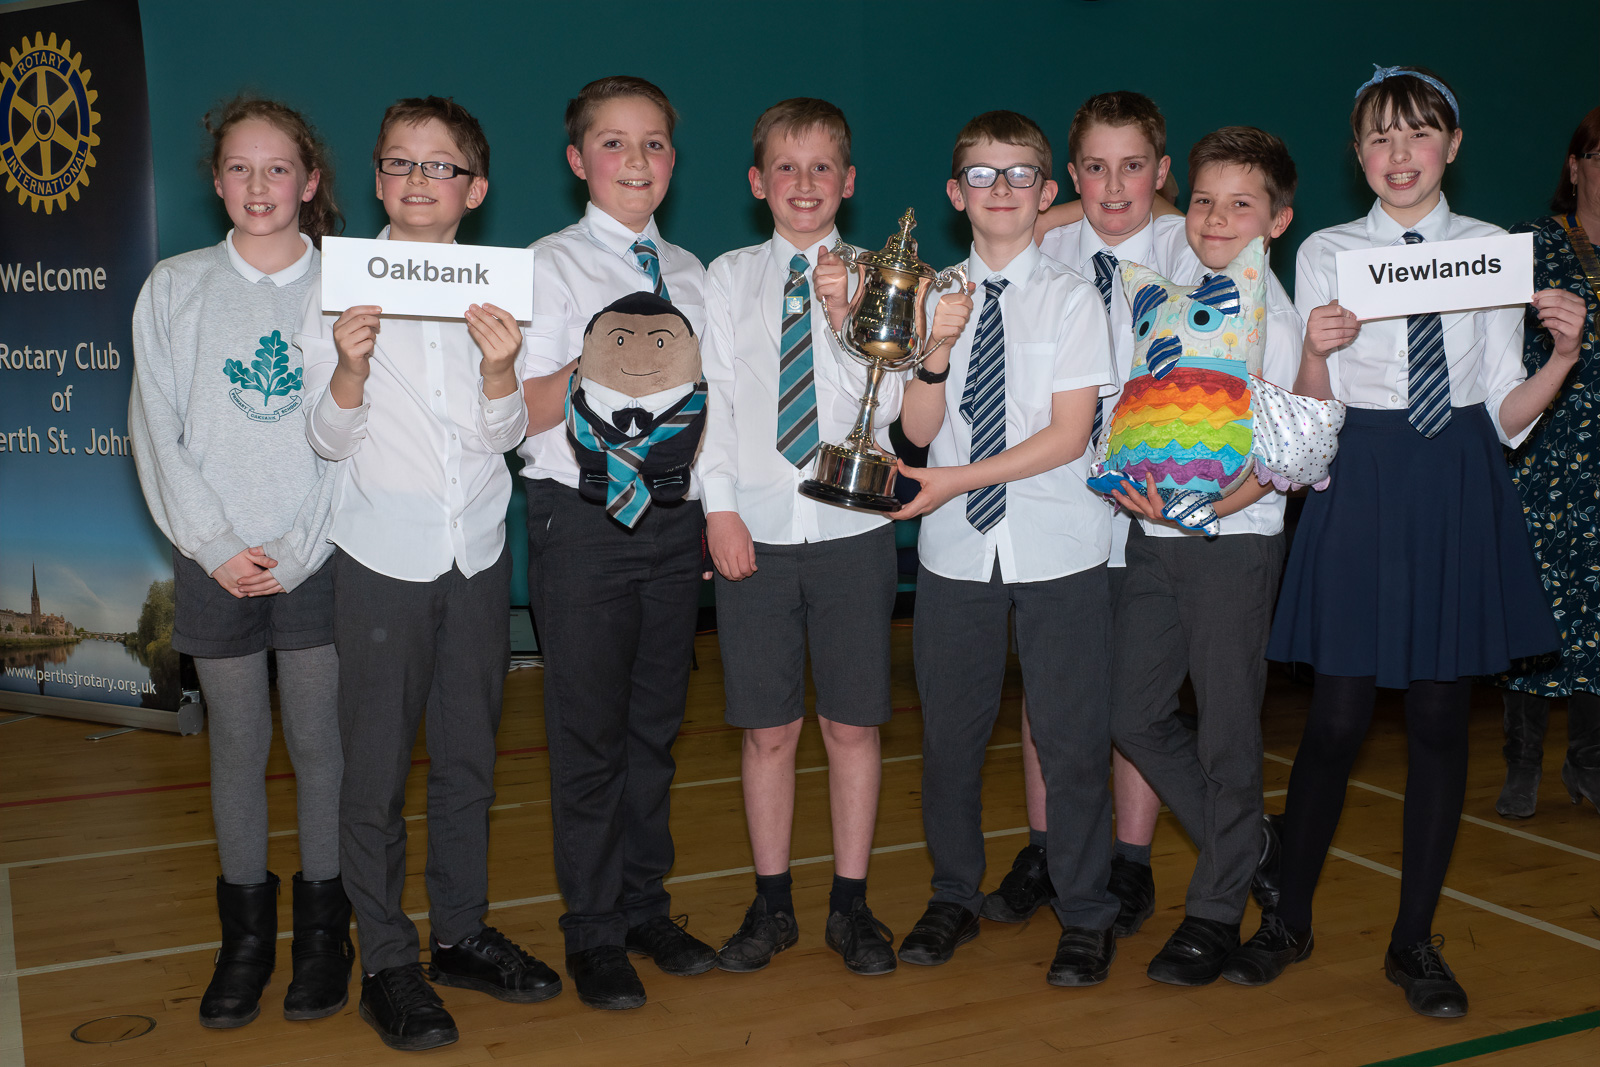 The winning teams from Oakbank and Viewlands Schools